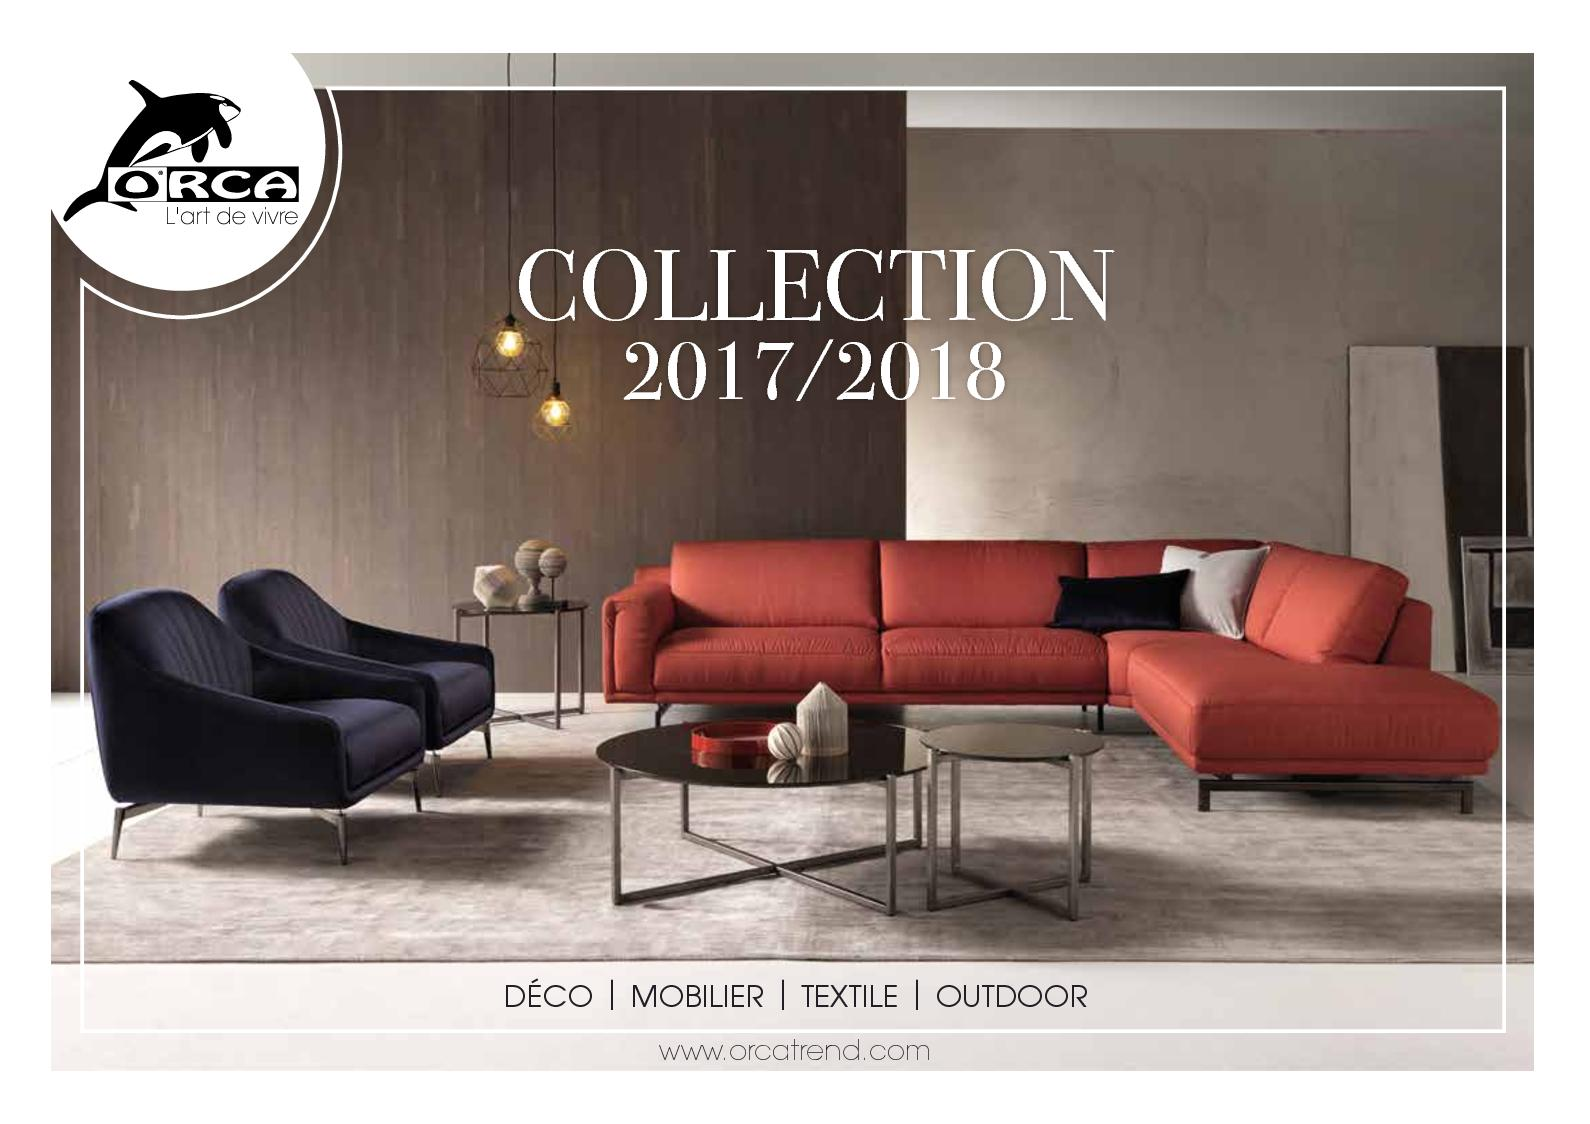 Comment Laver Un Tapis De Salon calaméo - catalogue orca 2017-2018